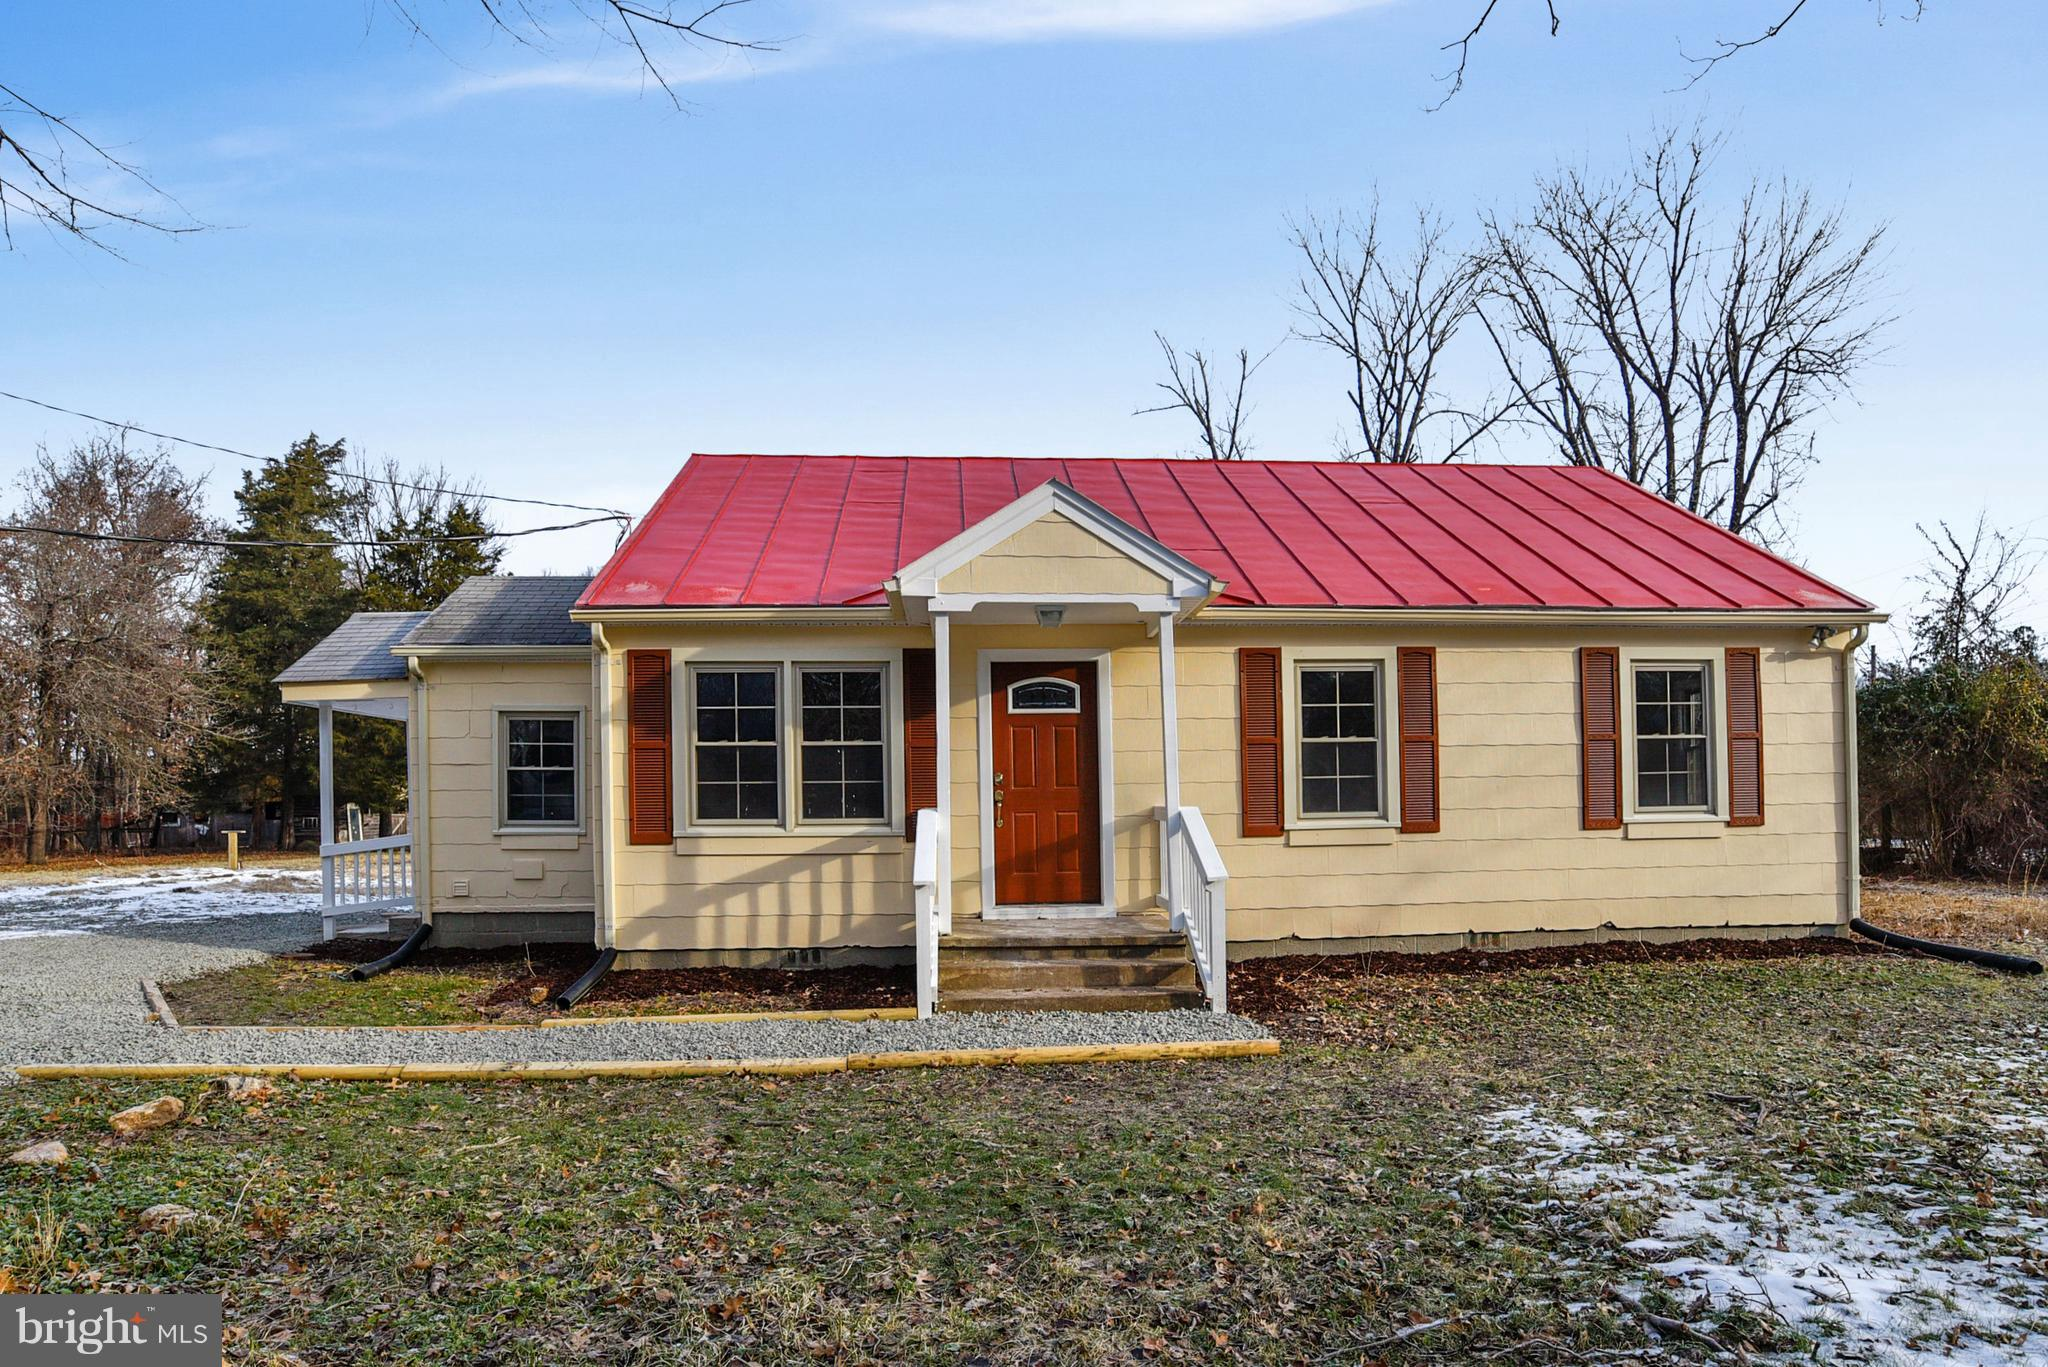 11721 LUCKY HILL ROAD, REMINGTON, VA 22734